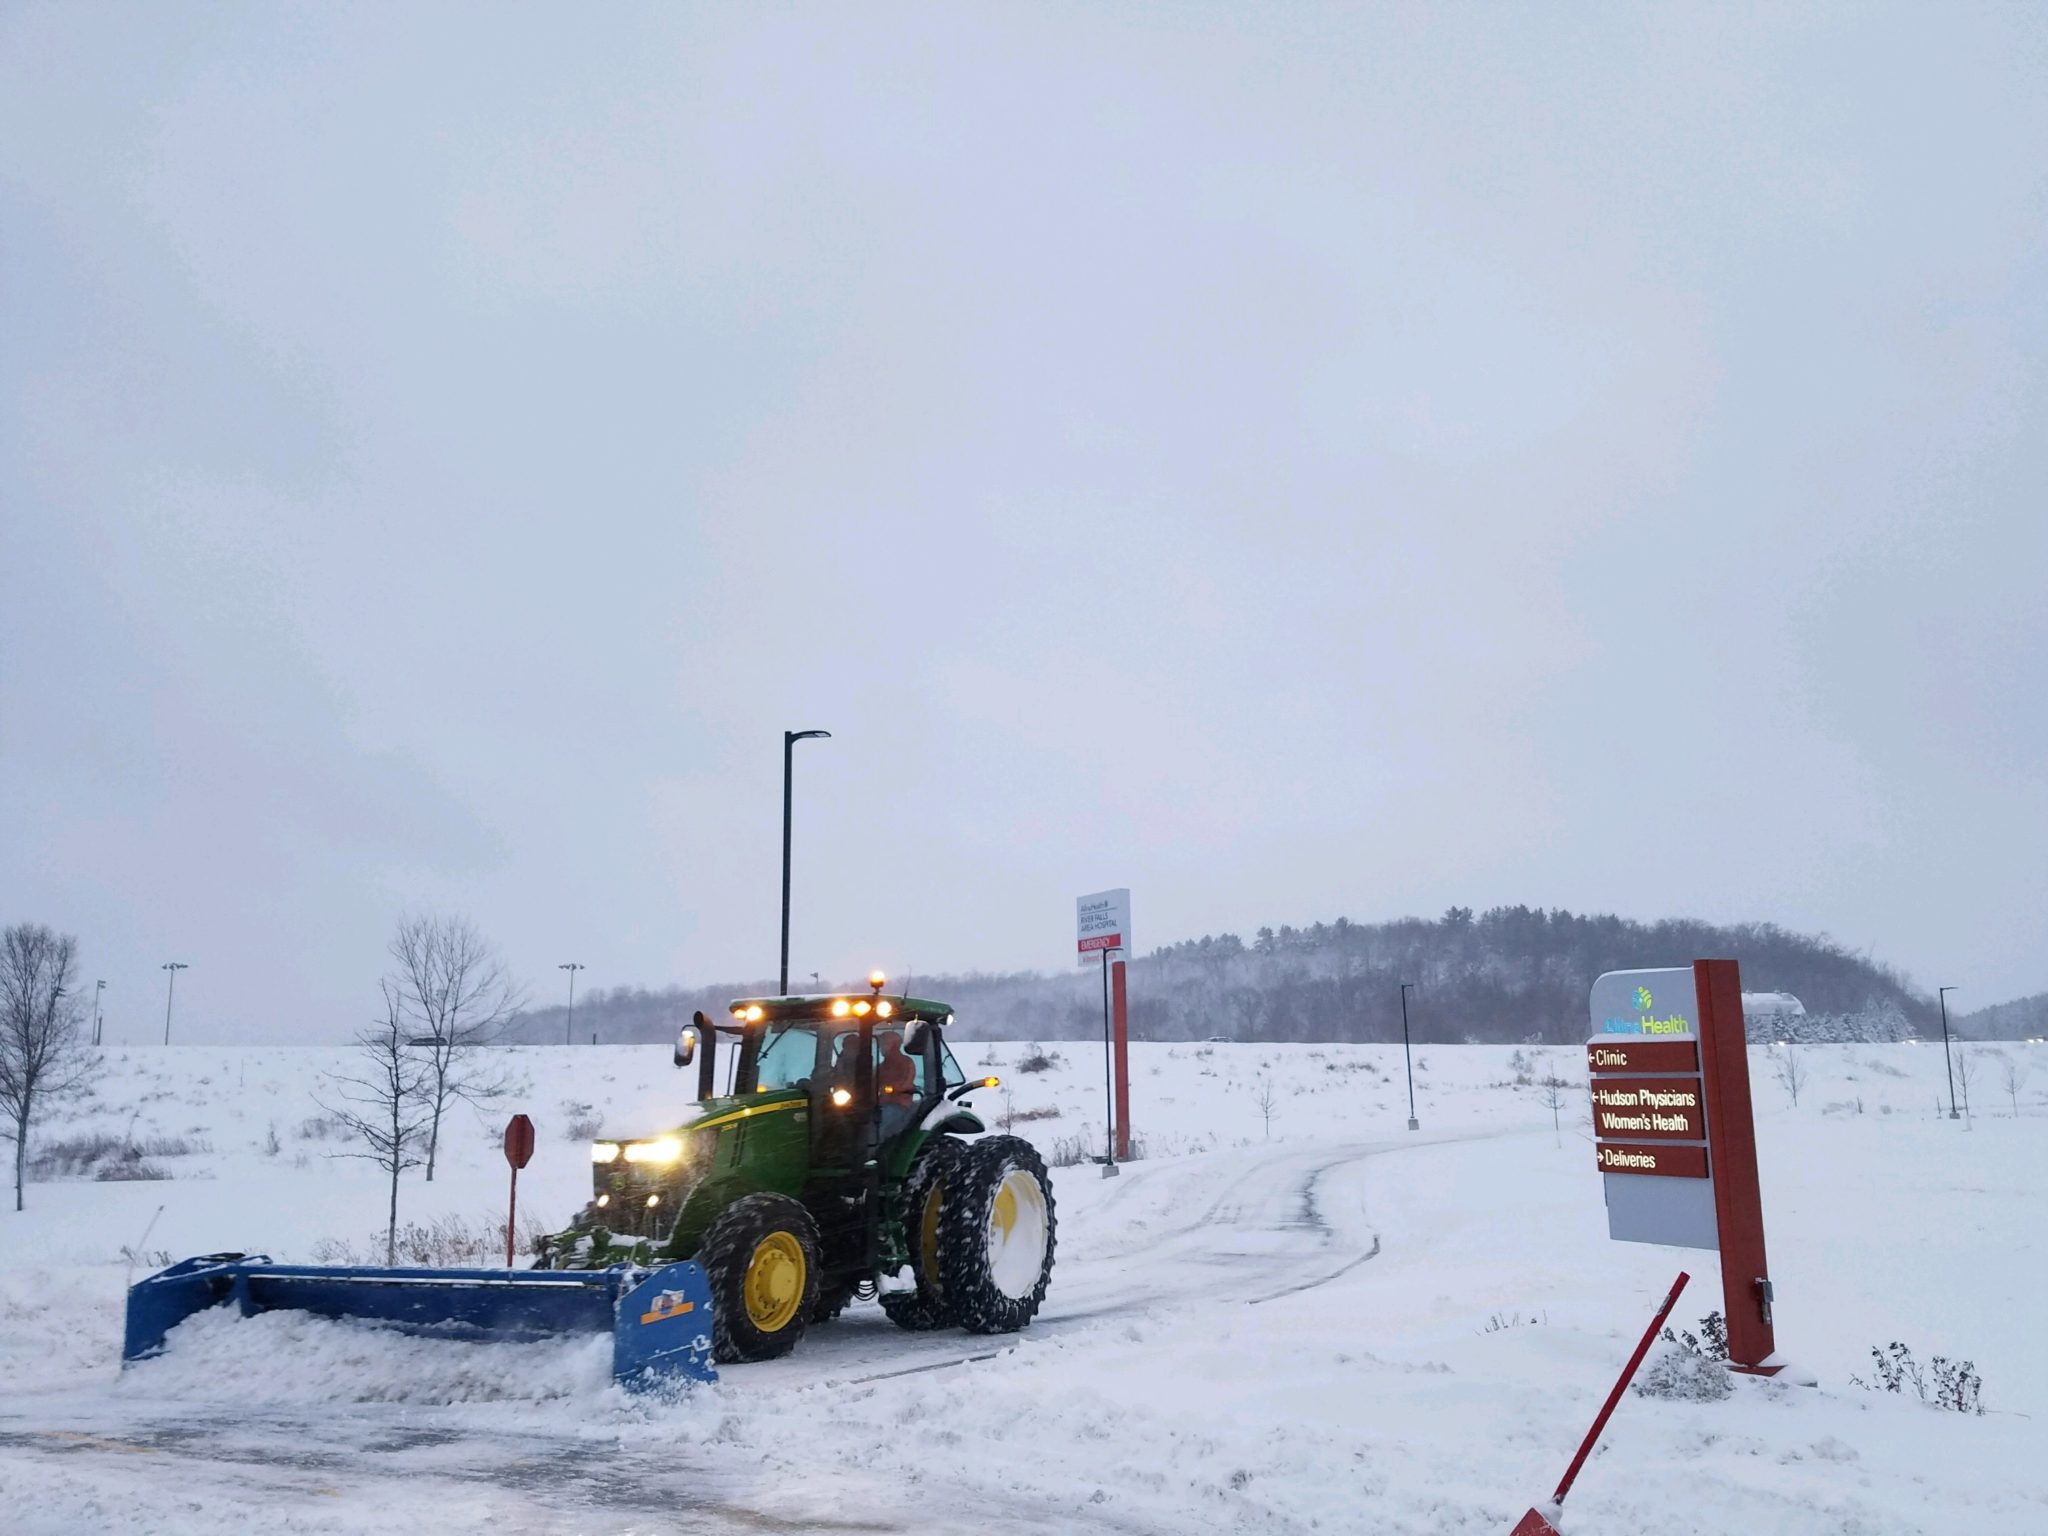 Tractor with Snow Plow Attachment